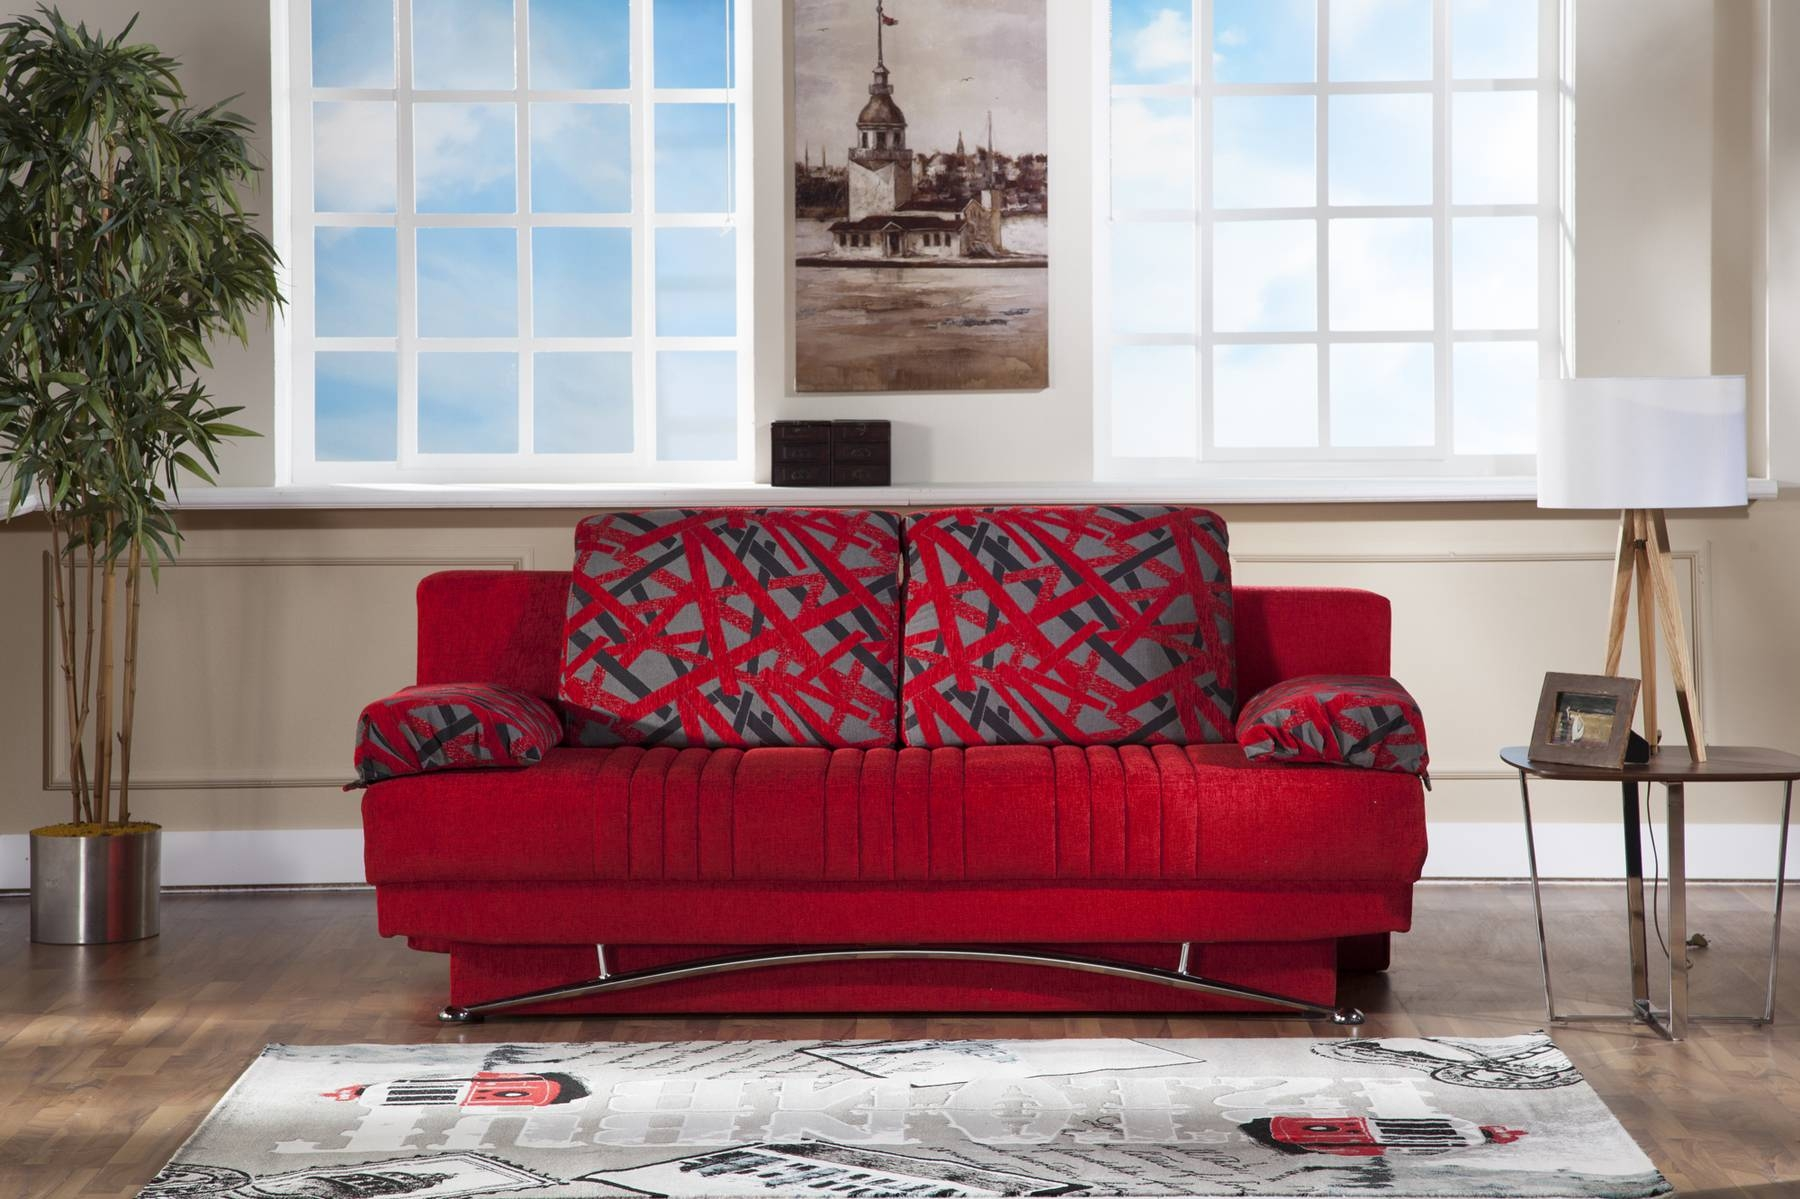 Fantasy Red Sofa Bed Sufantasy Sunset Furniture Sleepers, Sofa in Red Sleeper Sofa (Image 7 of 30)